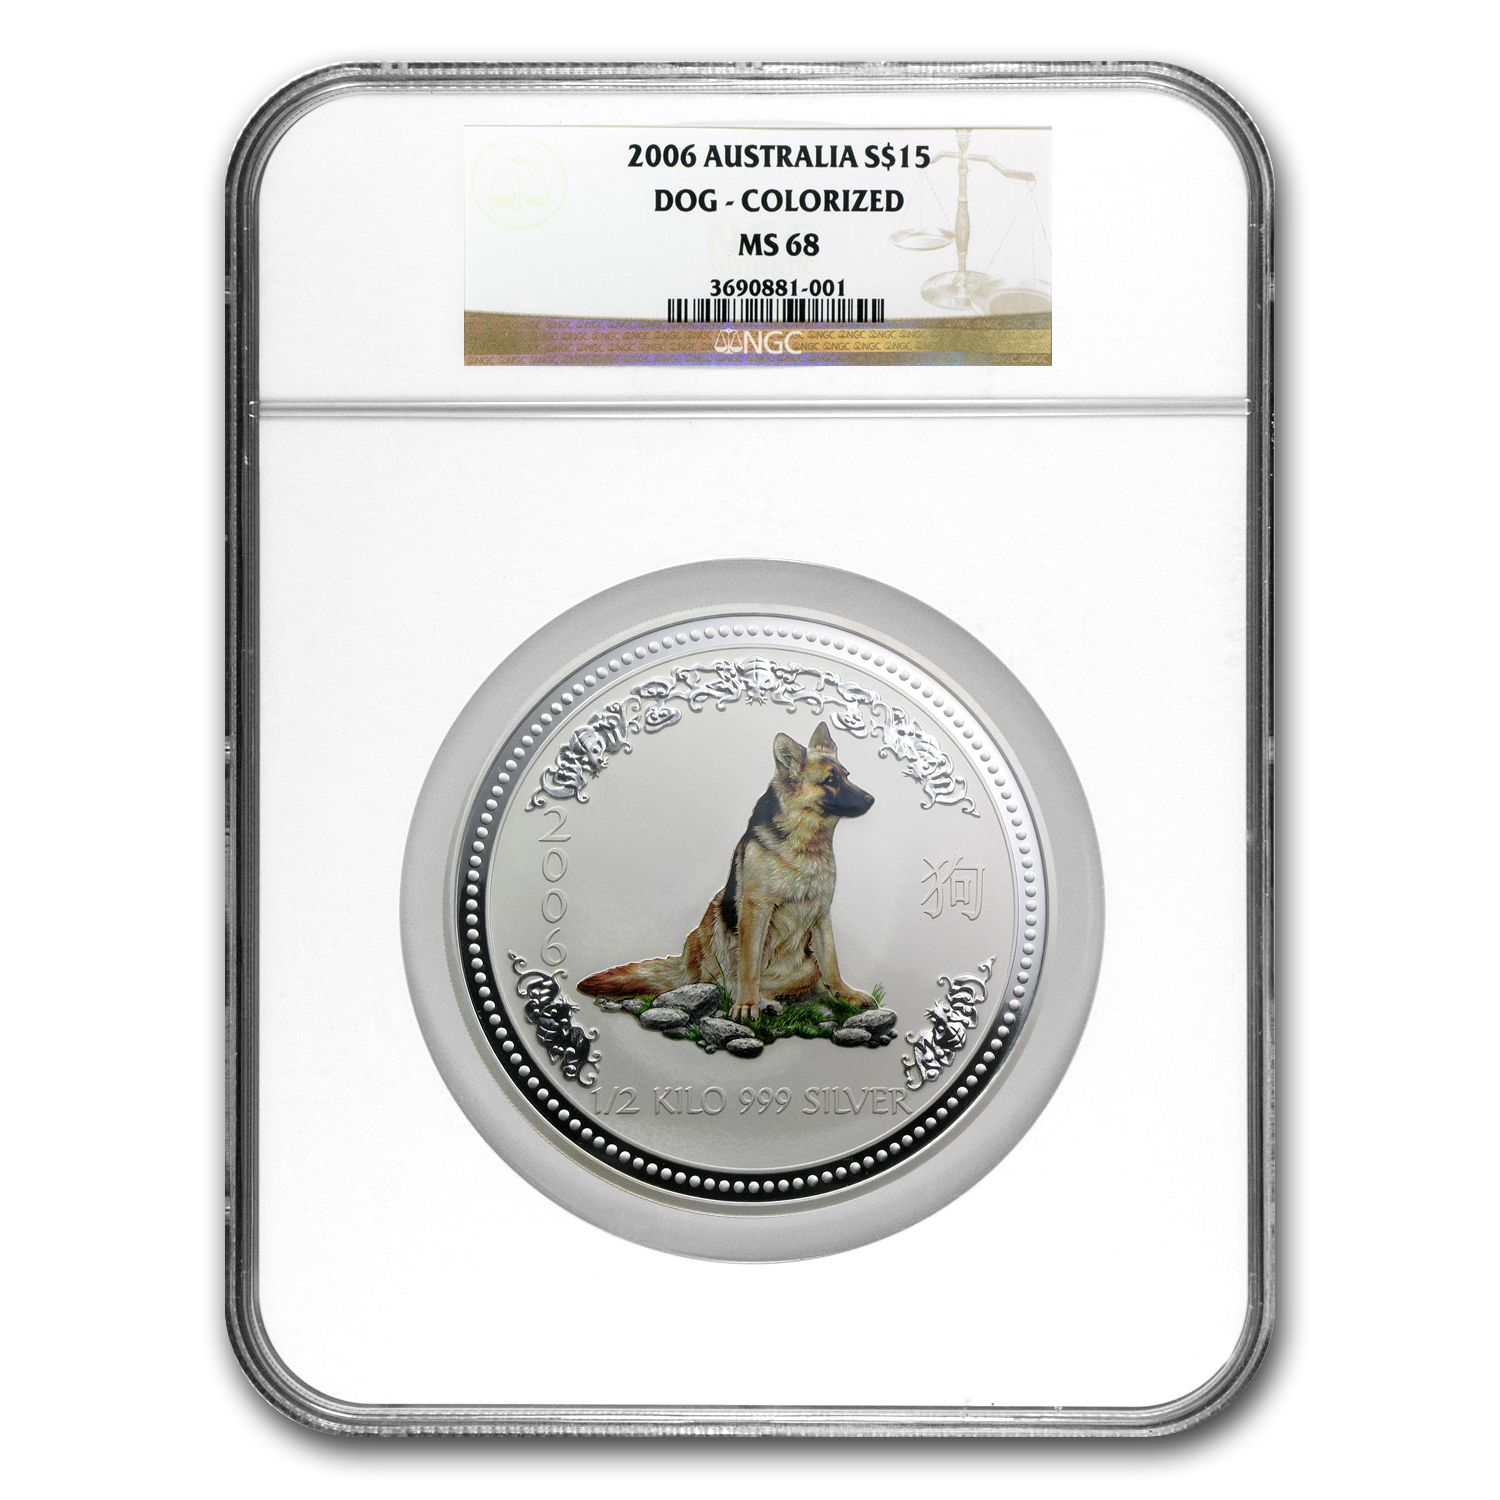 2006 Australia 1/2 kilo Silver Dog MS-68 NGC (Colorized)